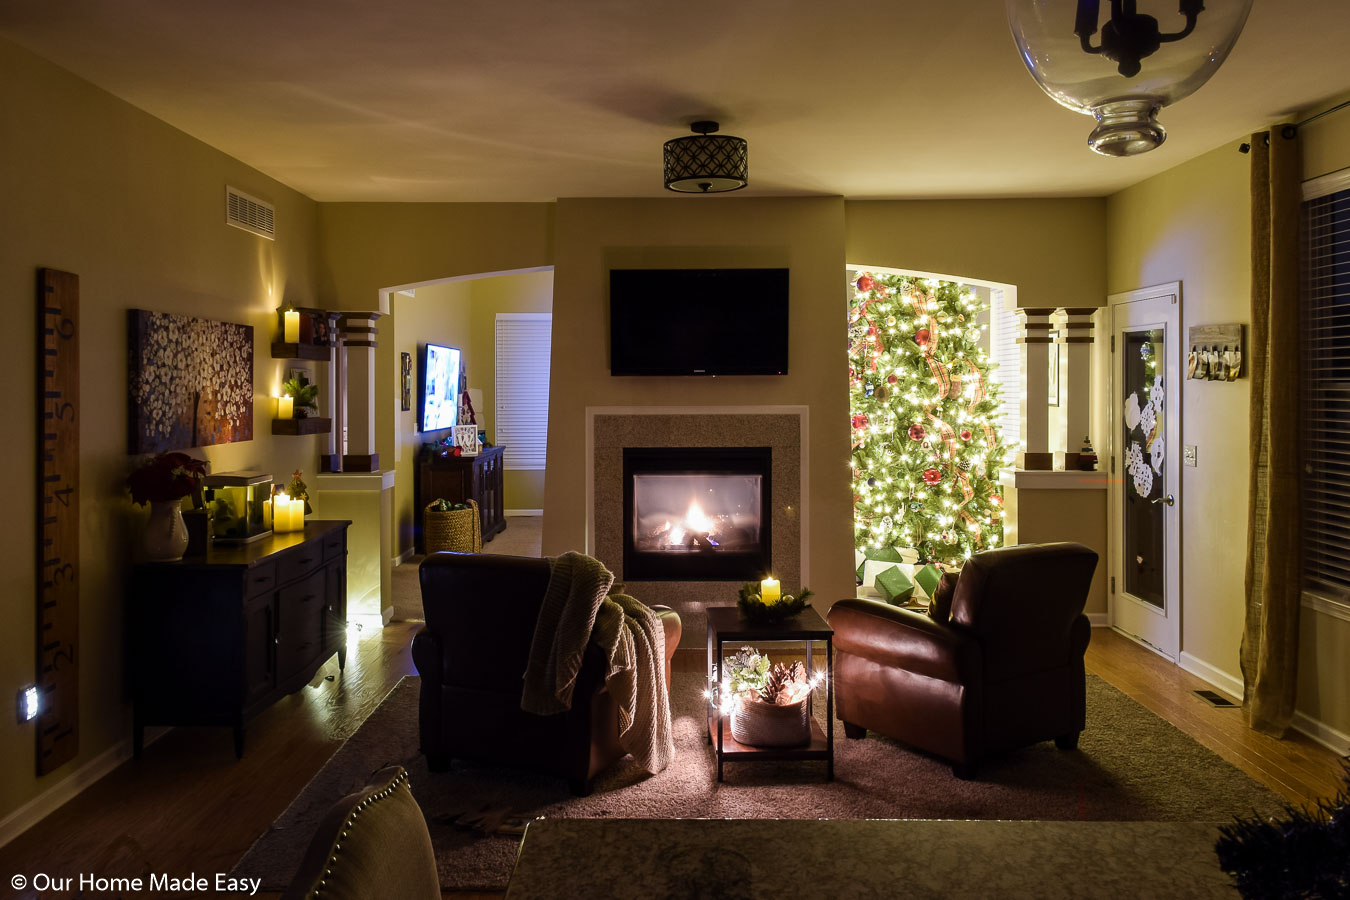 Our hearth room is the coziest room in the house, with comfortable reading chairs, blankets, and warm fireside light